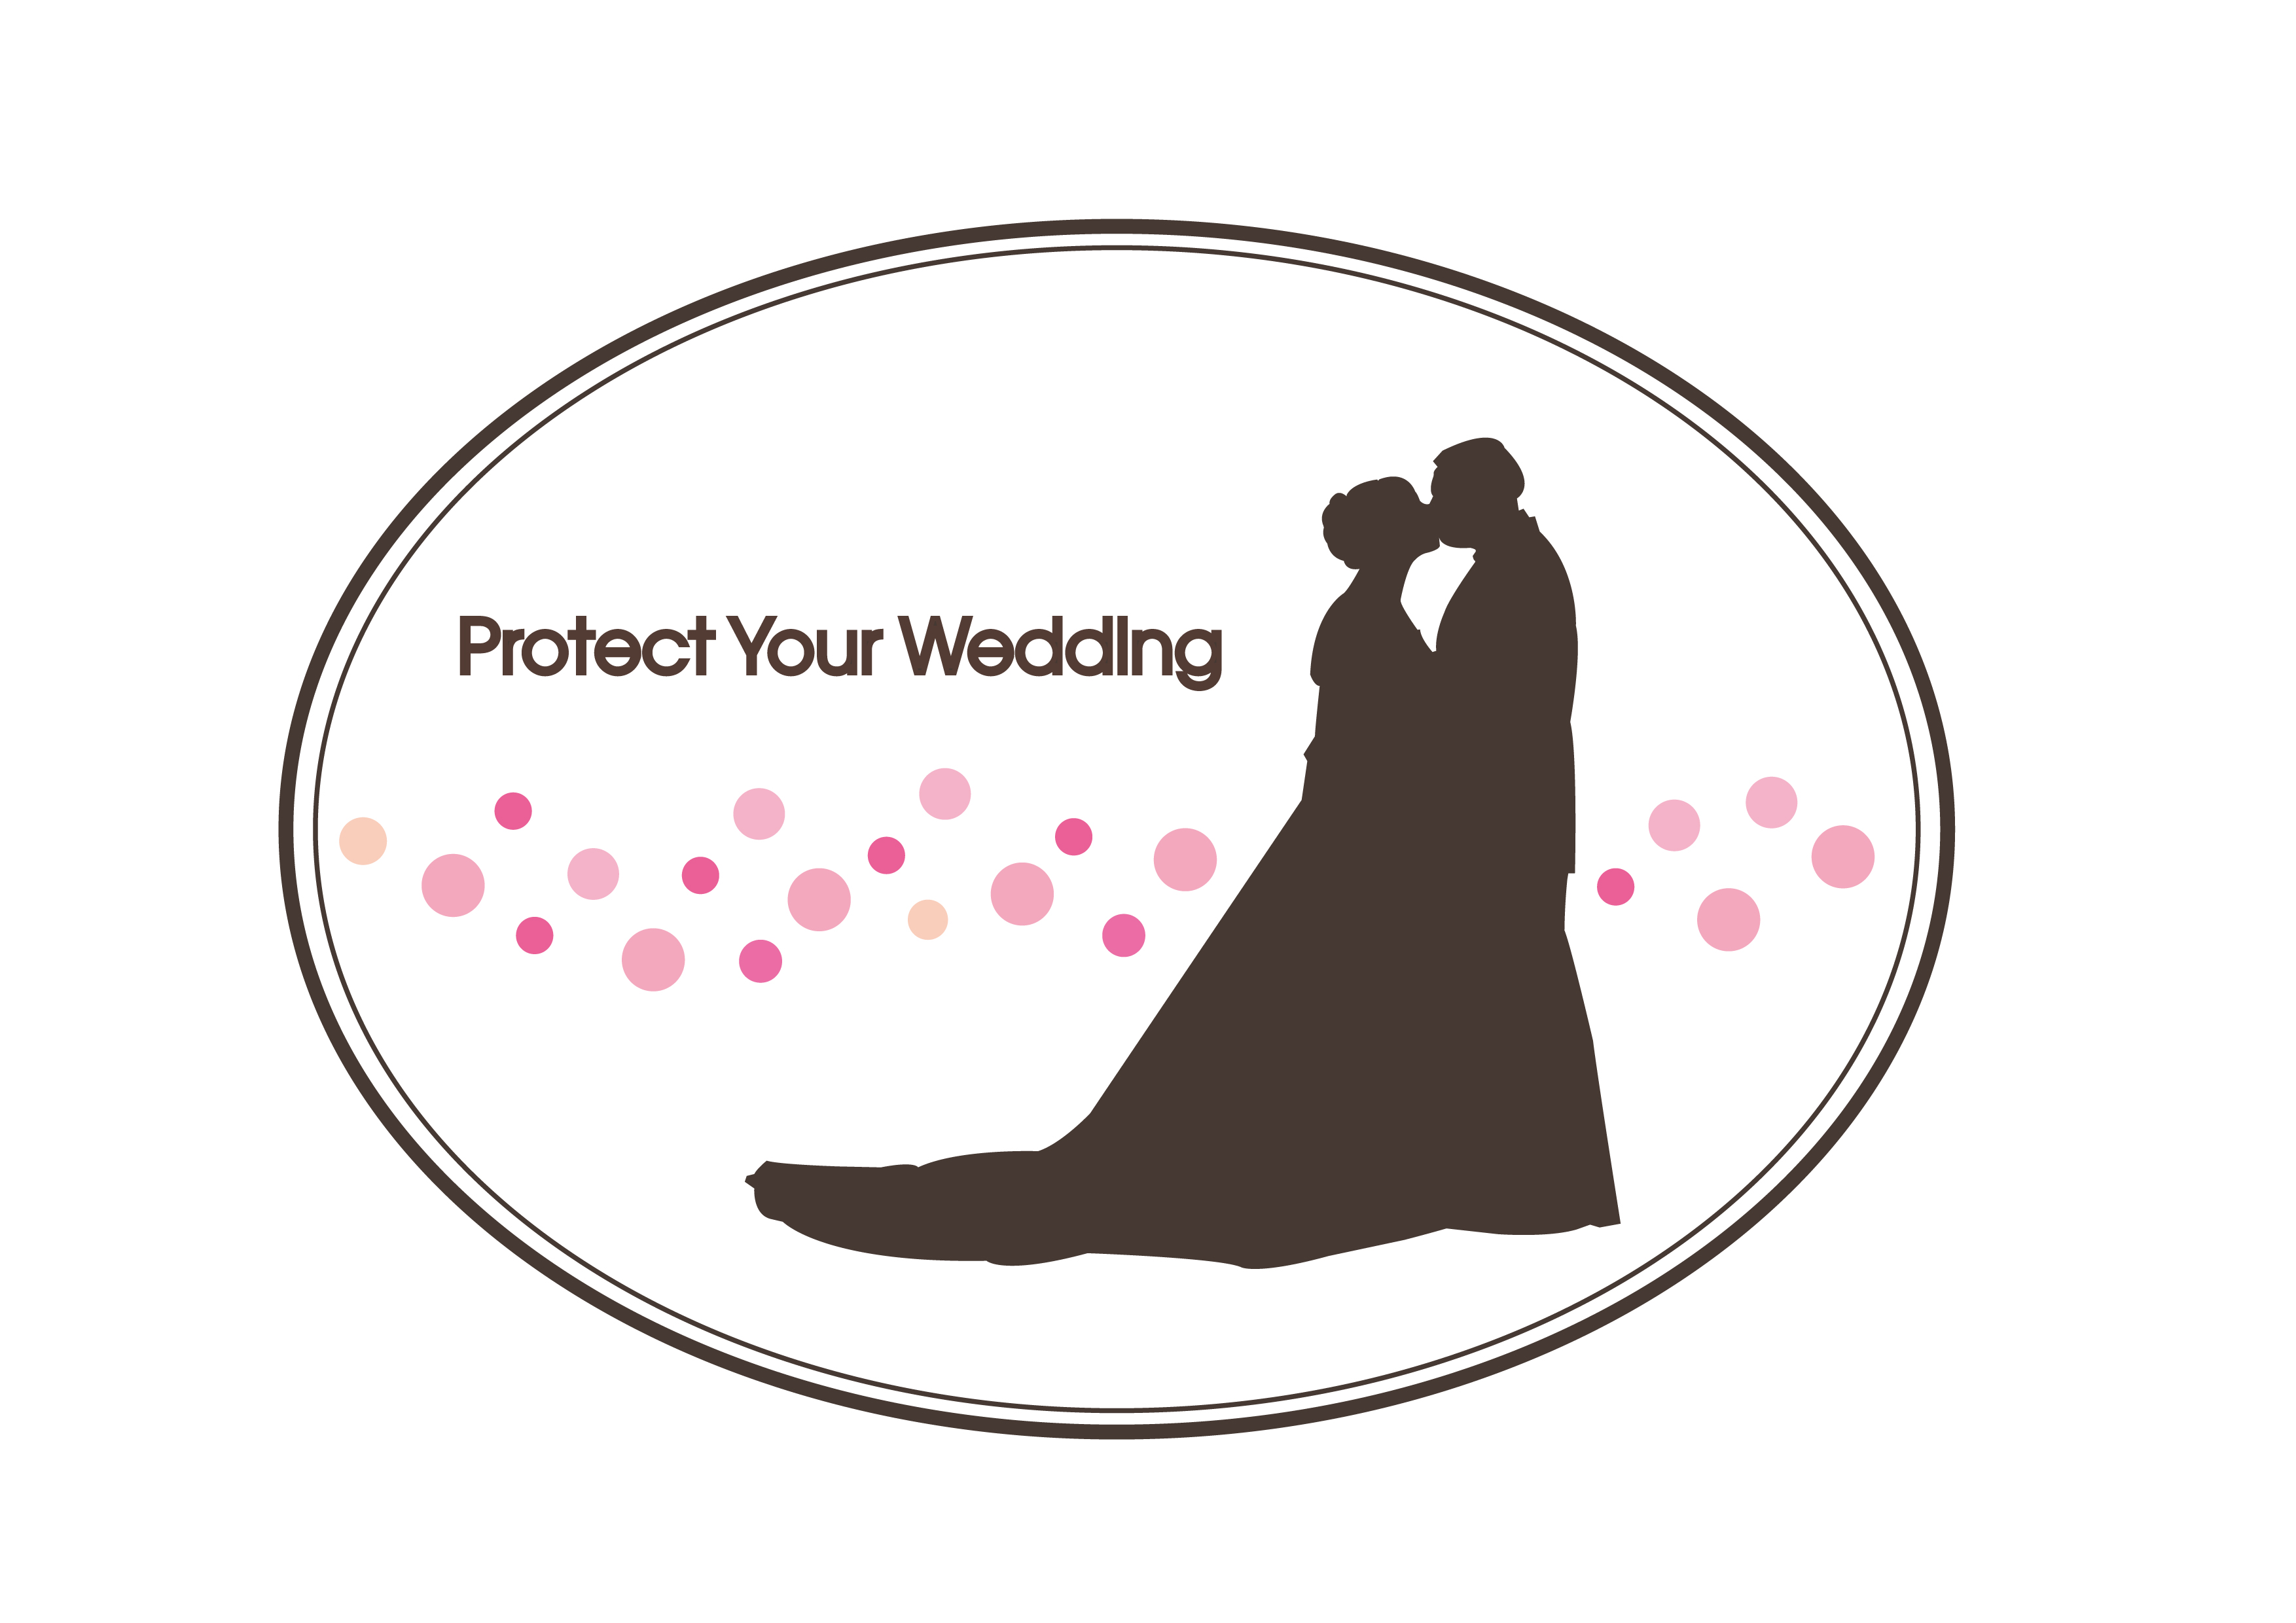 8 Professional Logo Designs for Protect Your Wedding a business in ...